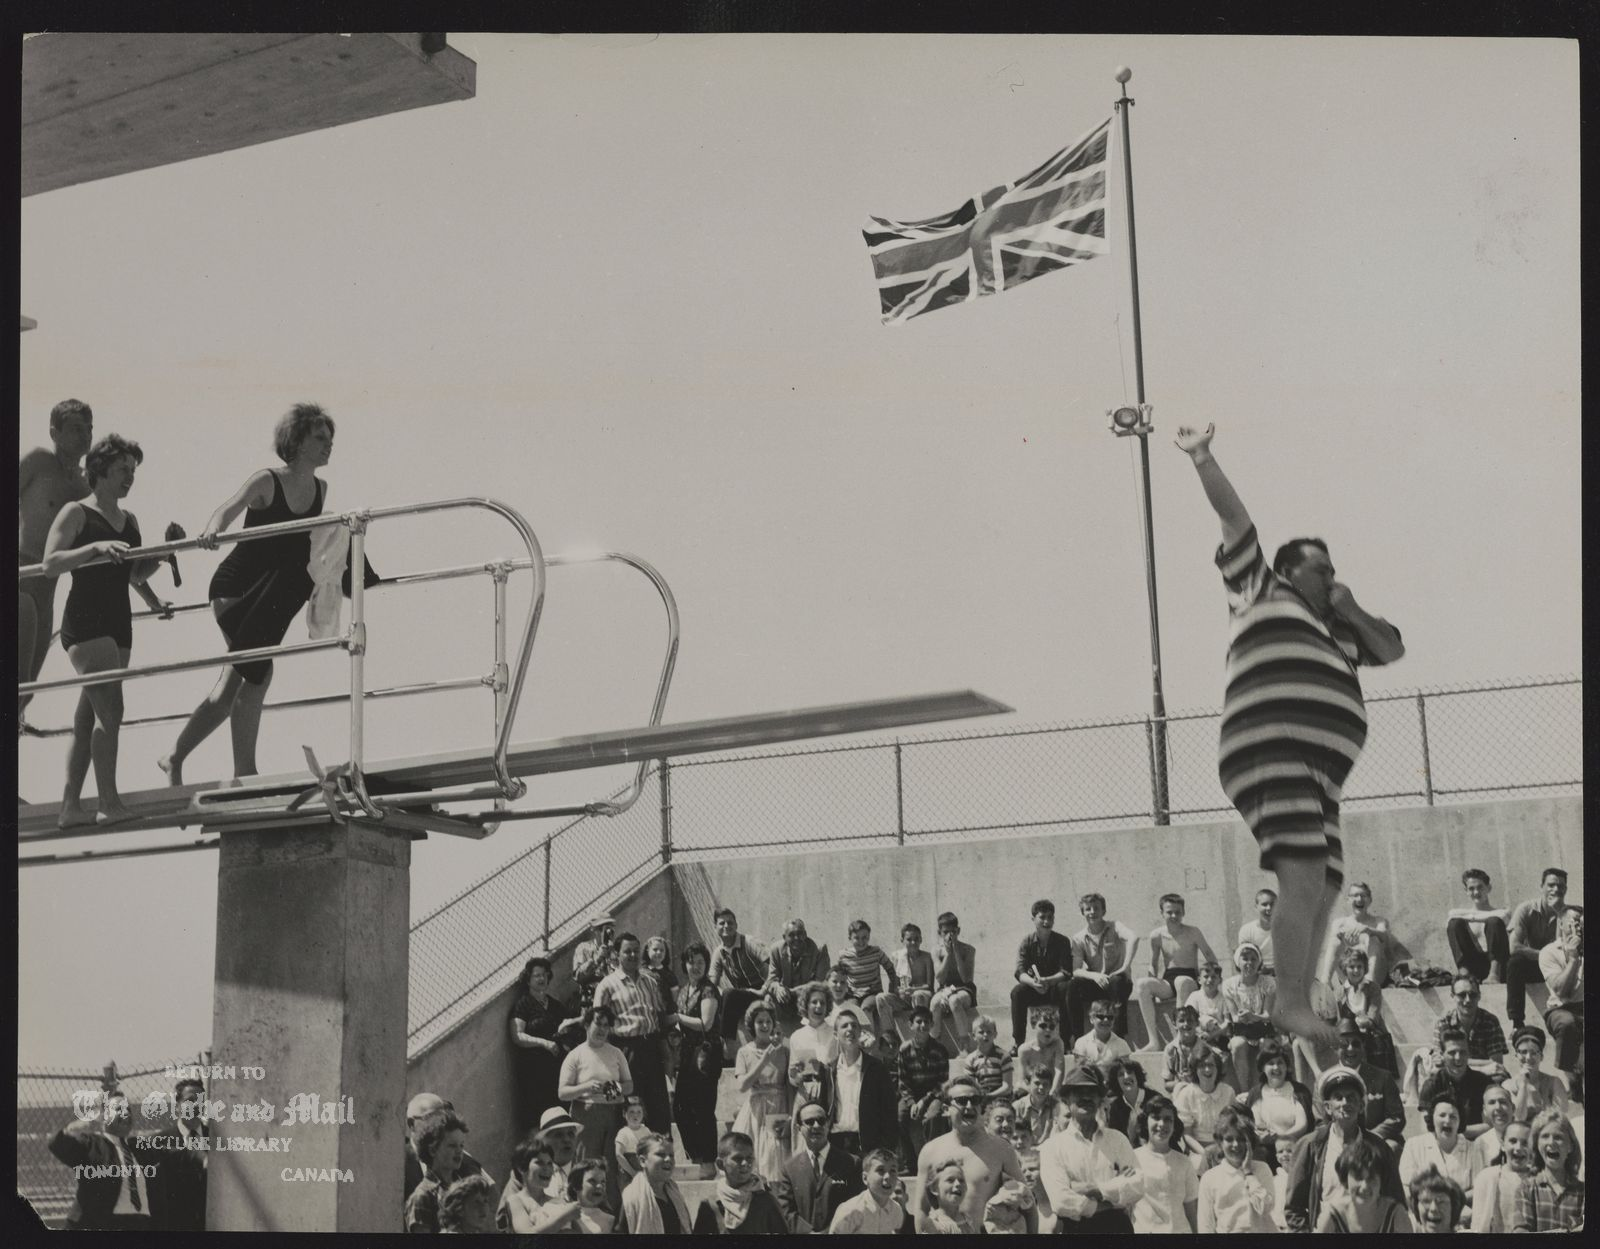 The notes transcribed from the back of this photograph are as follows: JOSEPH PICCININNI Toronto Alderman his glorious girth swathed in georgious stripes, clowns at pool opening at Beaches Pool